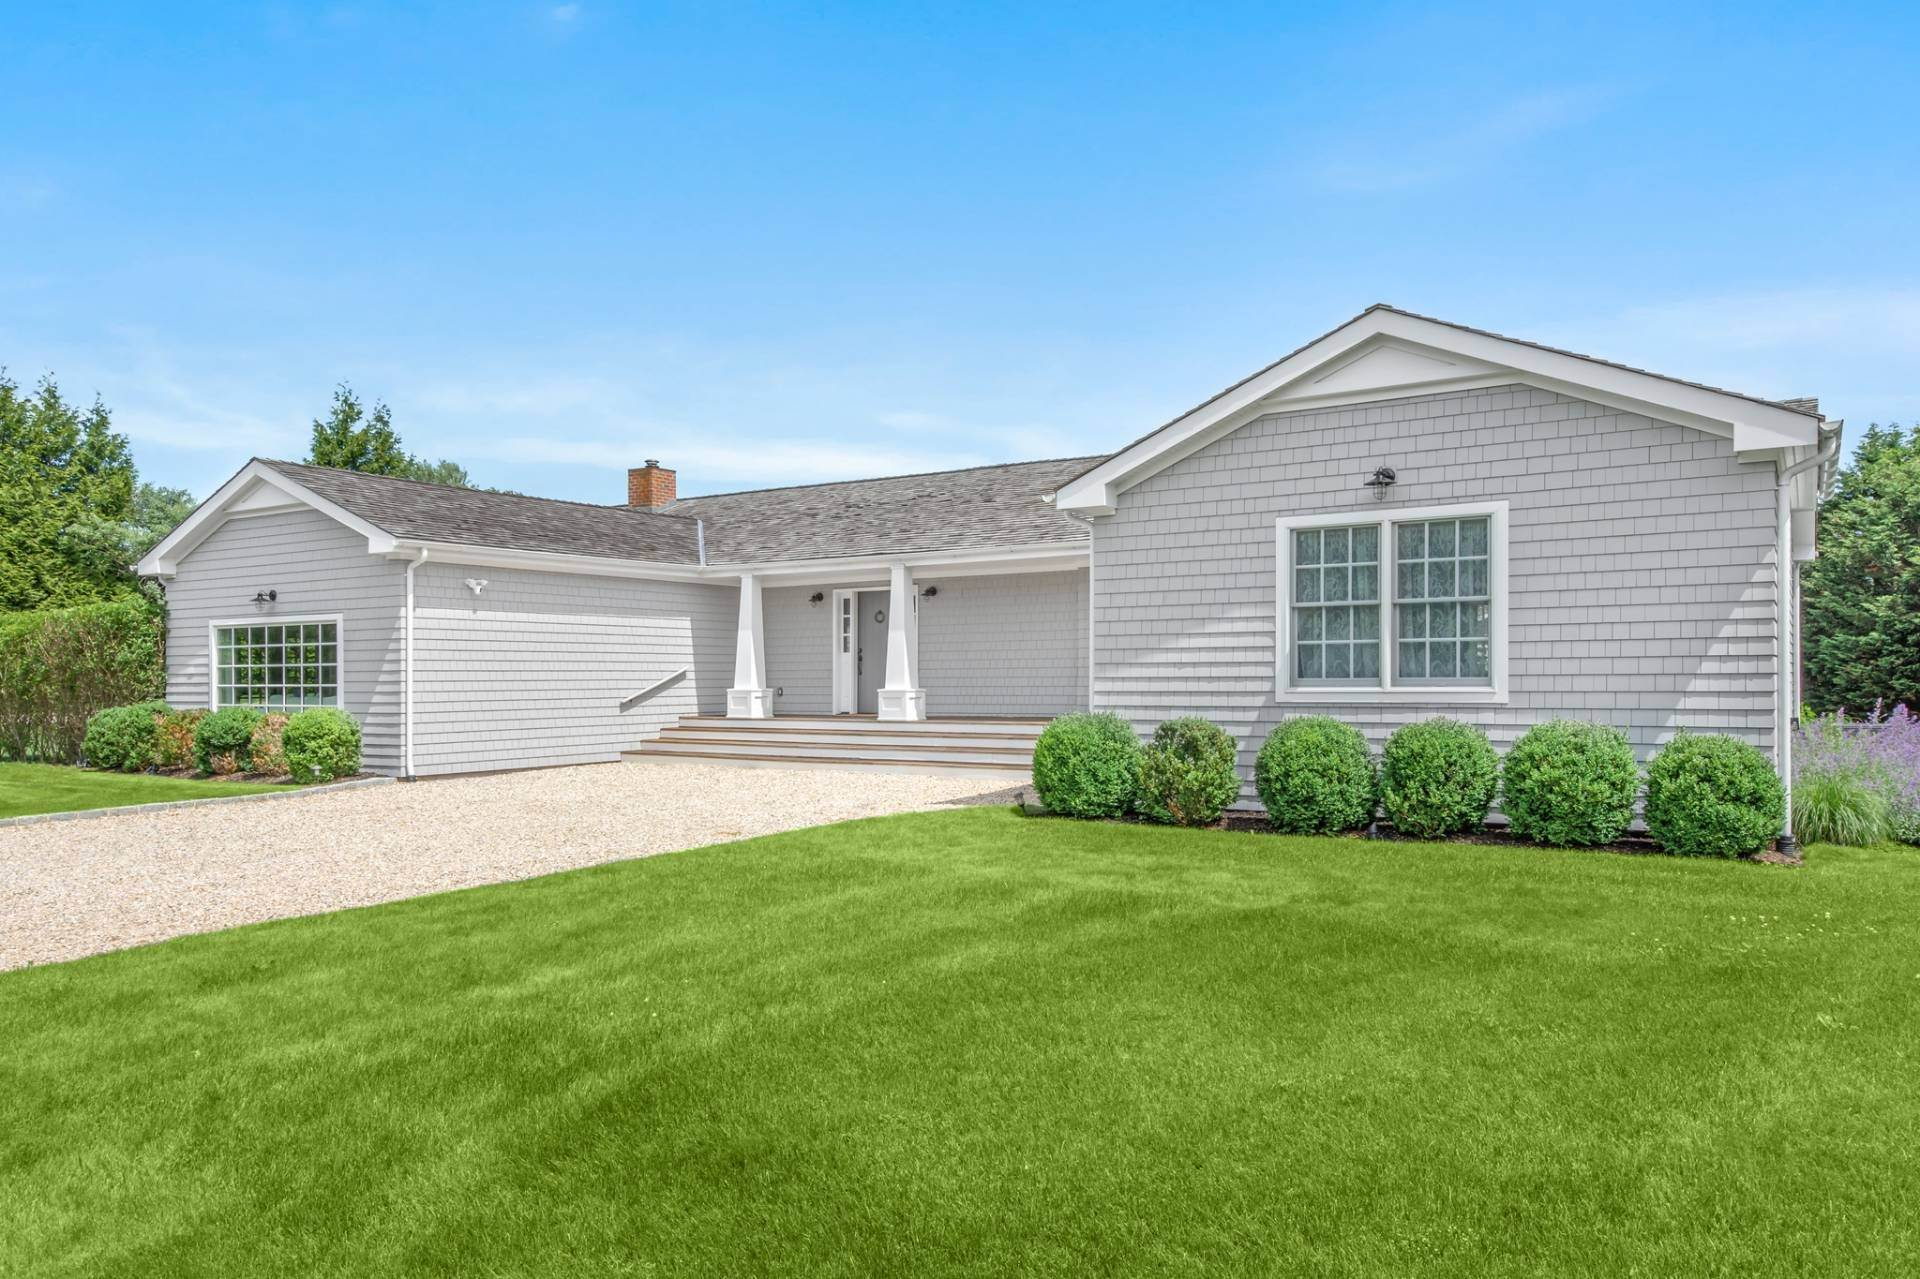 Single Family Homes for Sale at Ready And Renovated Bridgehampton, Southampton Town, NY 11932